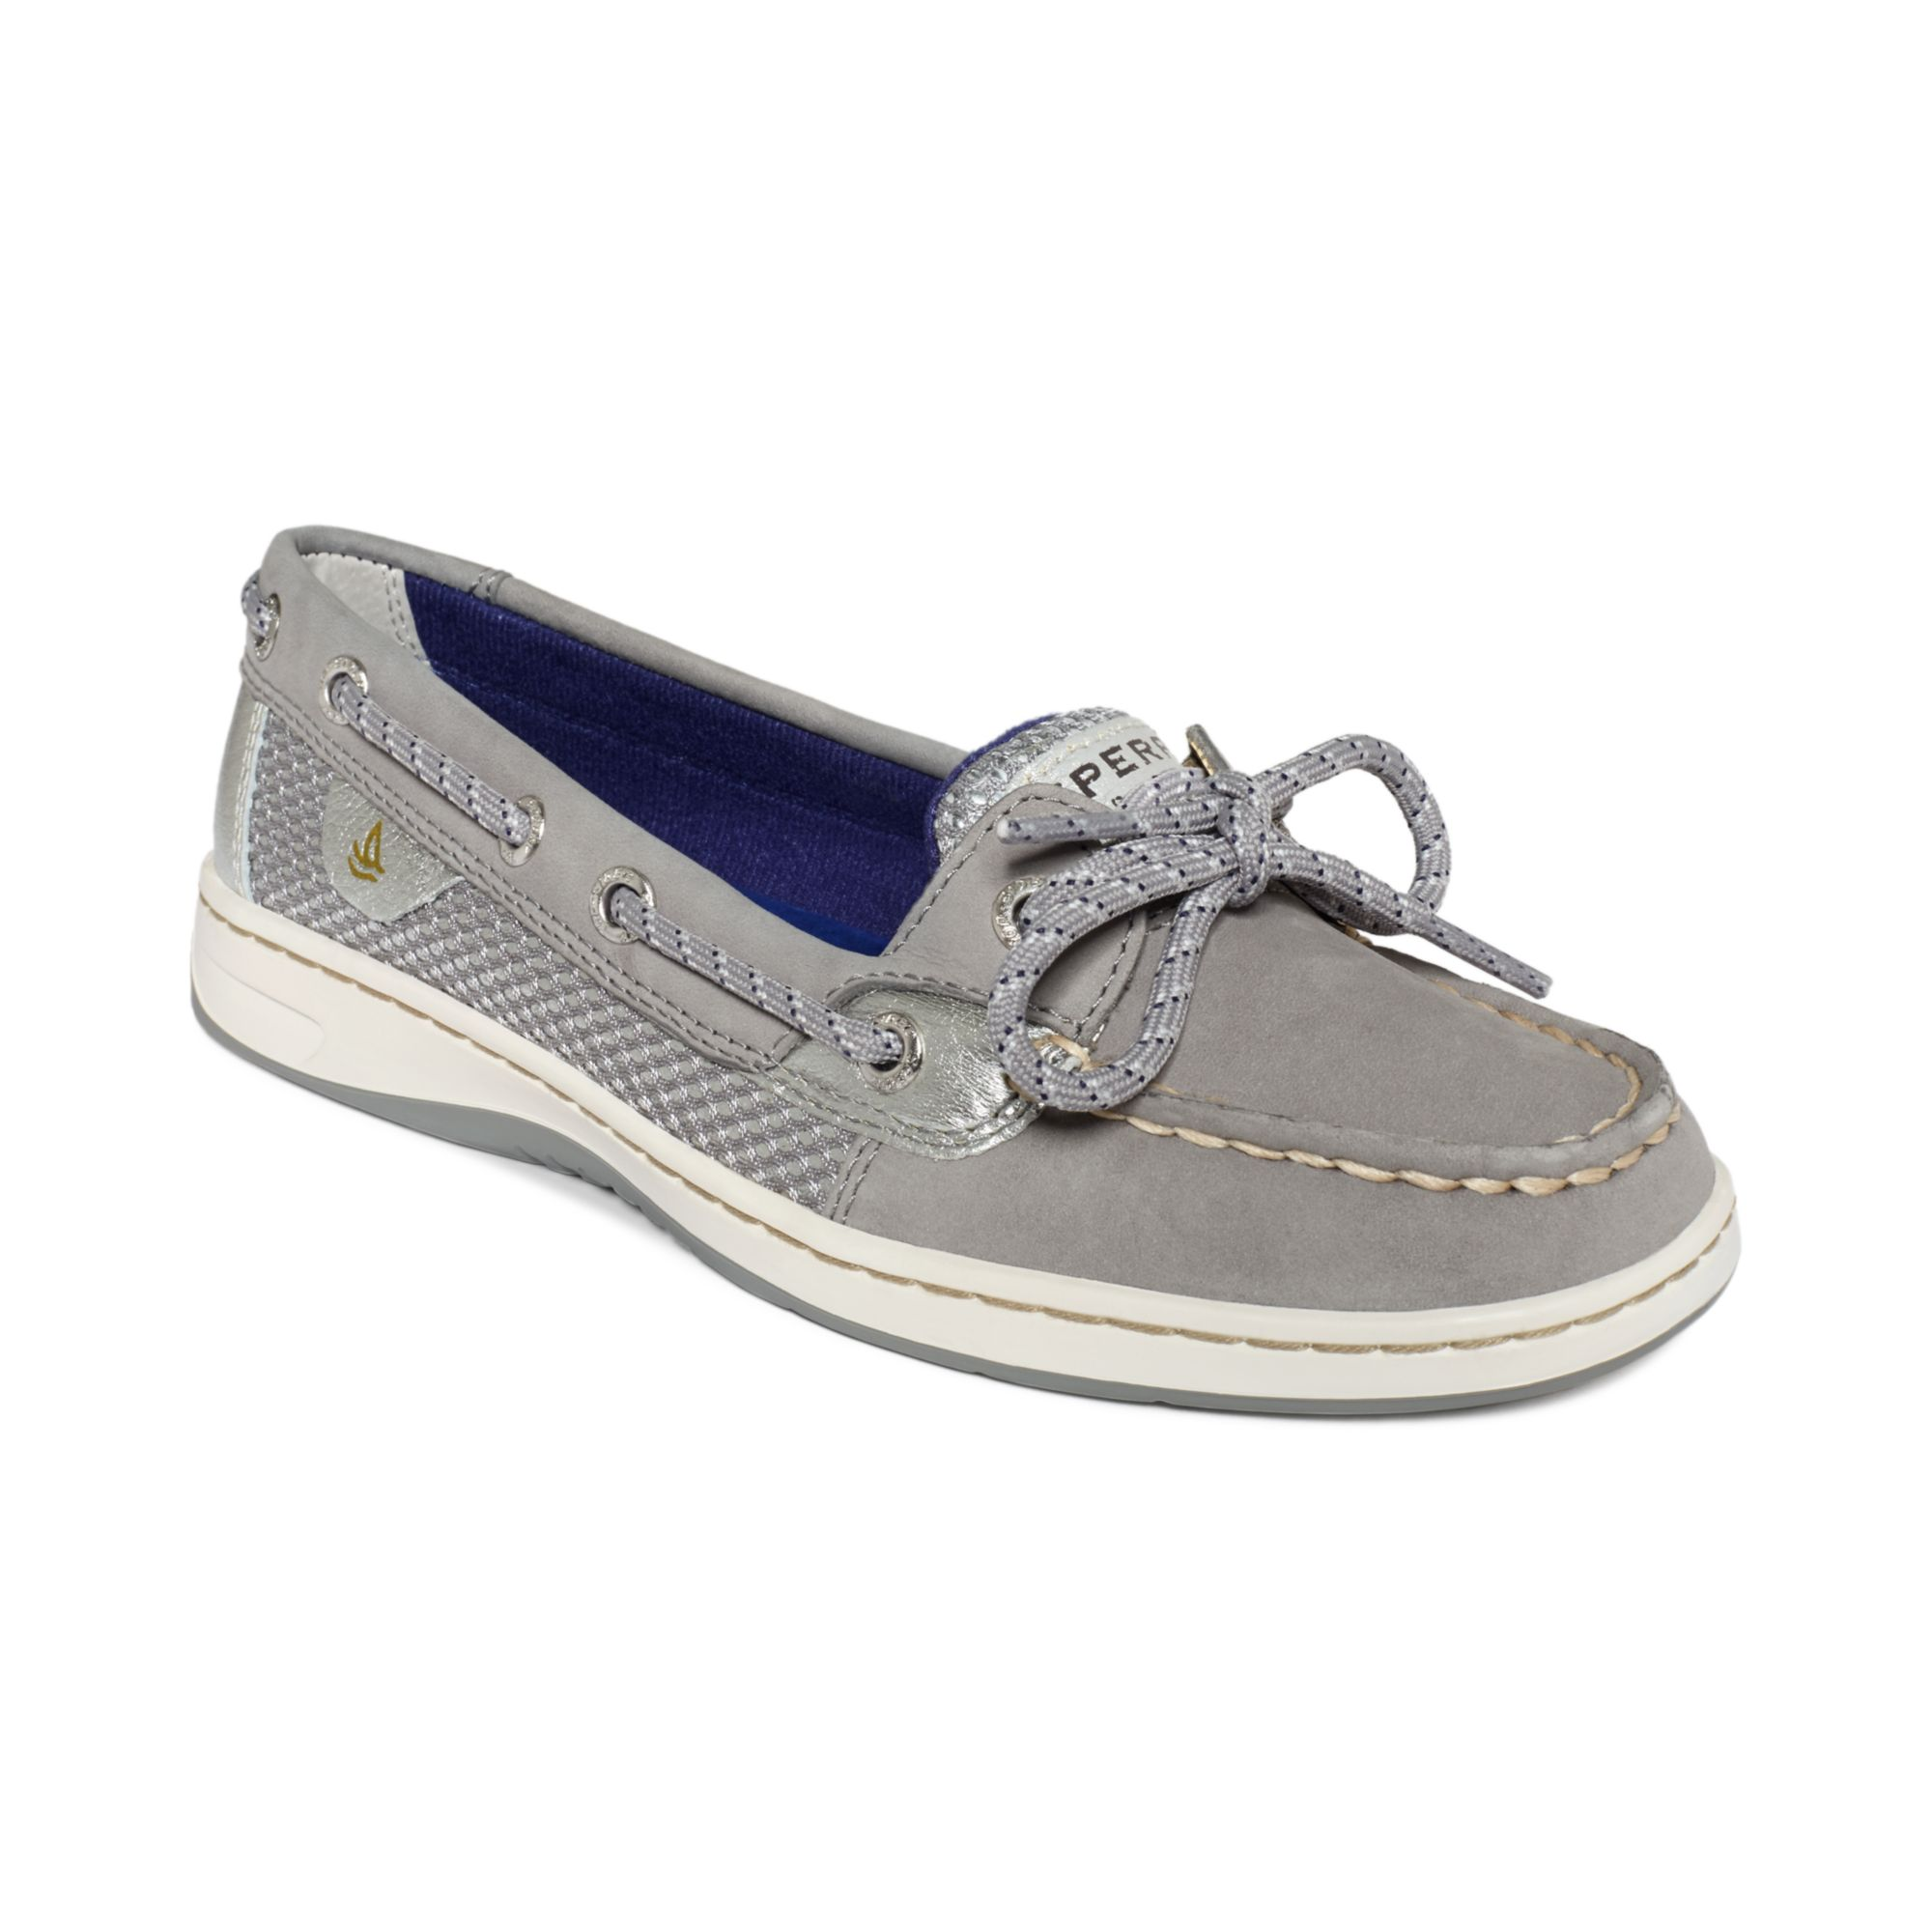 Wide Shoes for Women. Famous Footwear understands that no two feet are created the same. So, whether your feet are naturally wide or have changed shape over time, we have a collection of women's wide width shoes from heels to sneakers with a diverse offering of .